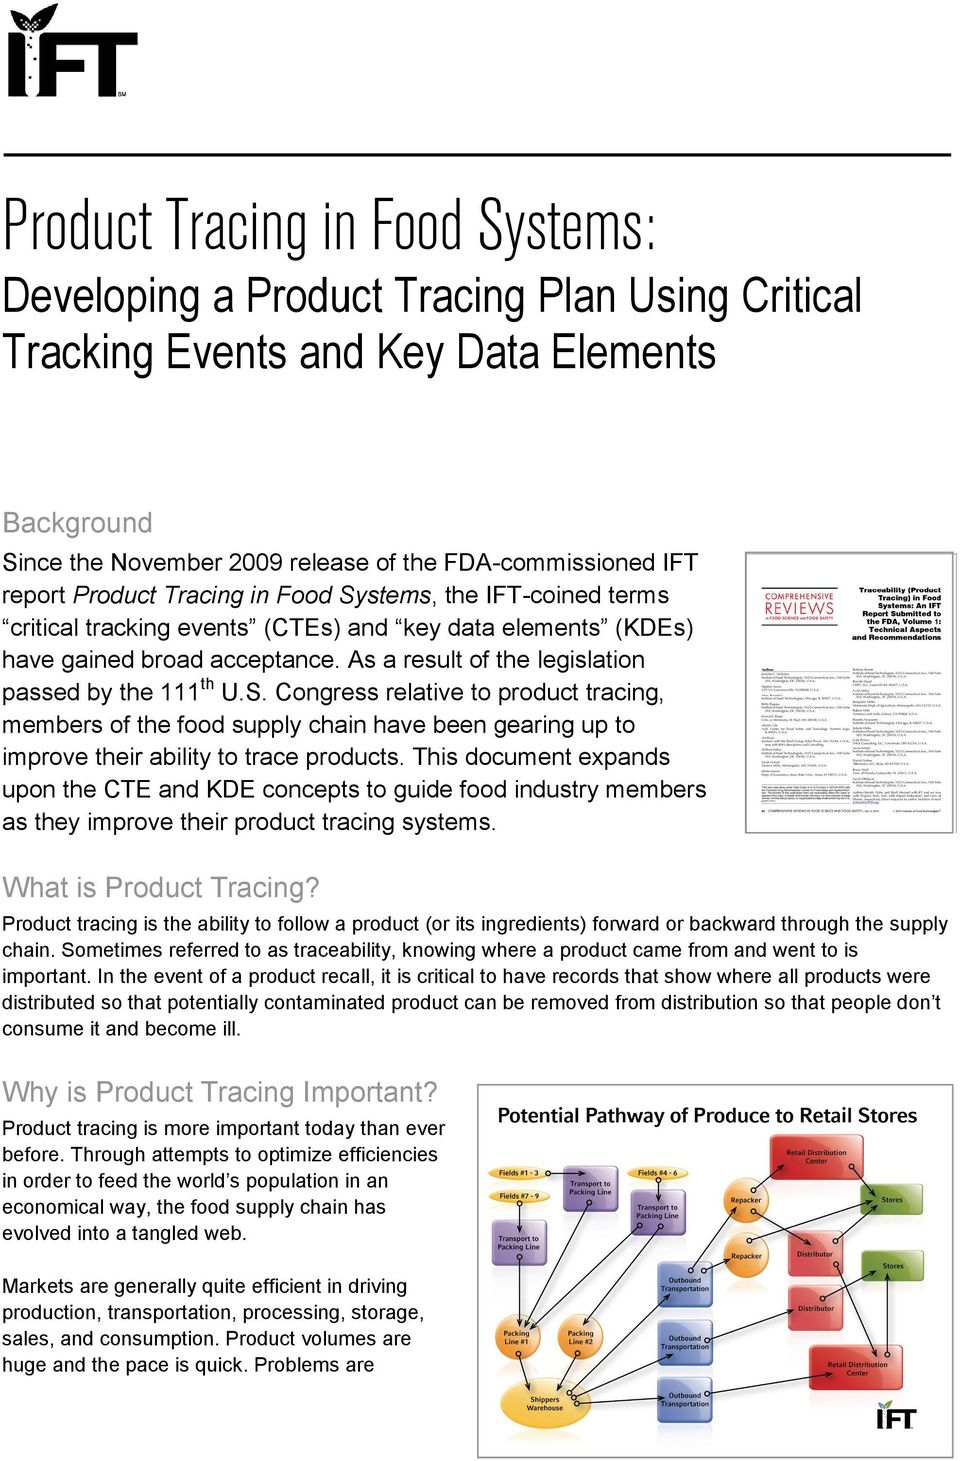 S. Congress relative to product tracing, members of the food supply chain have been gearing up to improve their ability to trace products.